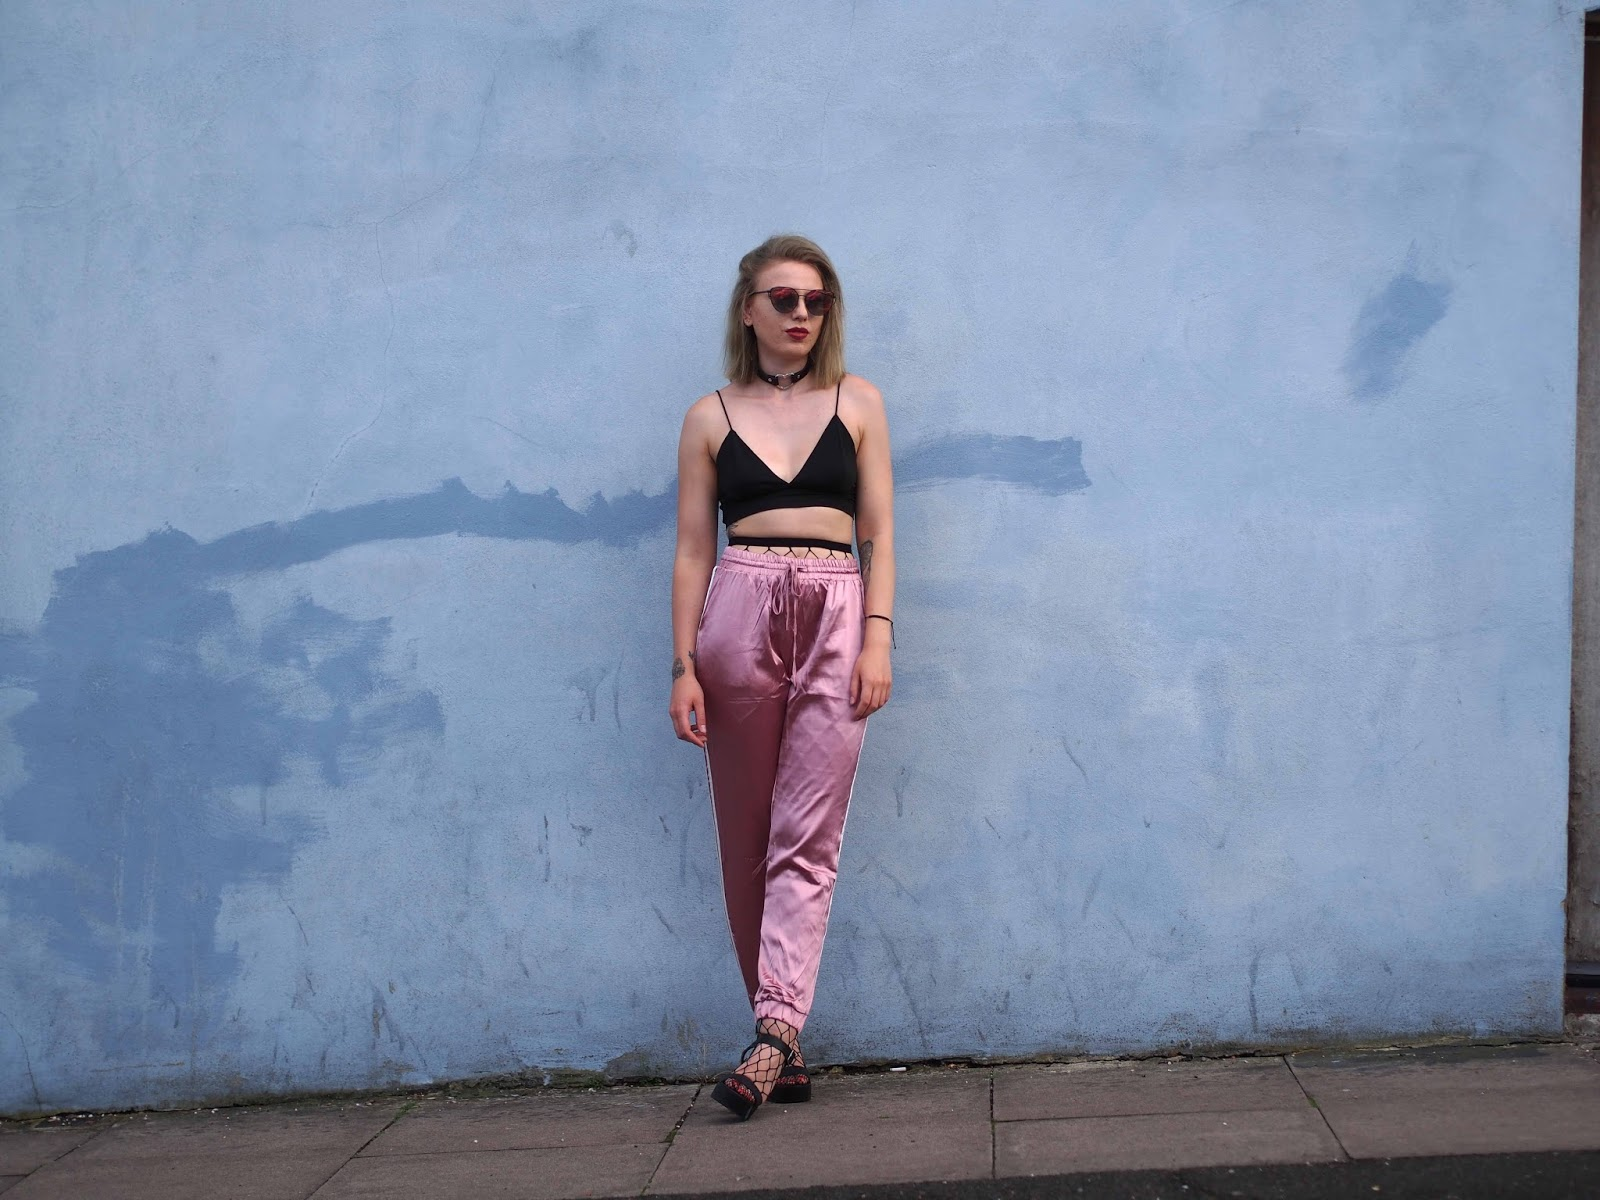 sports luxe, sports luxe outfit, how to wear fishnets, joggers and heels, london fashion blogger, london style blogger, grunge fashion blogger, grunge style blogger